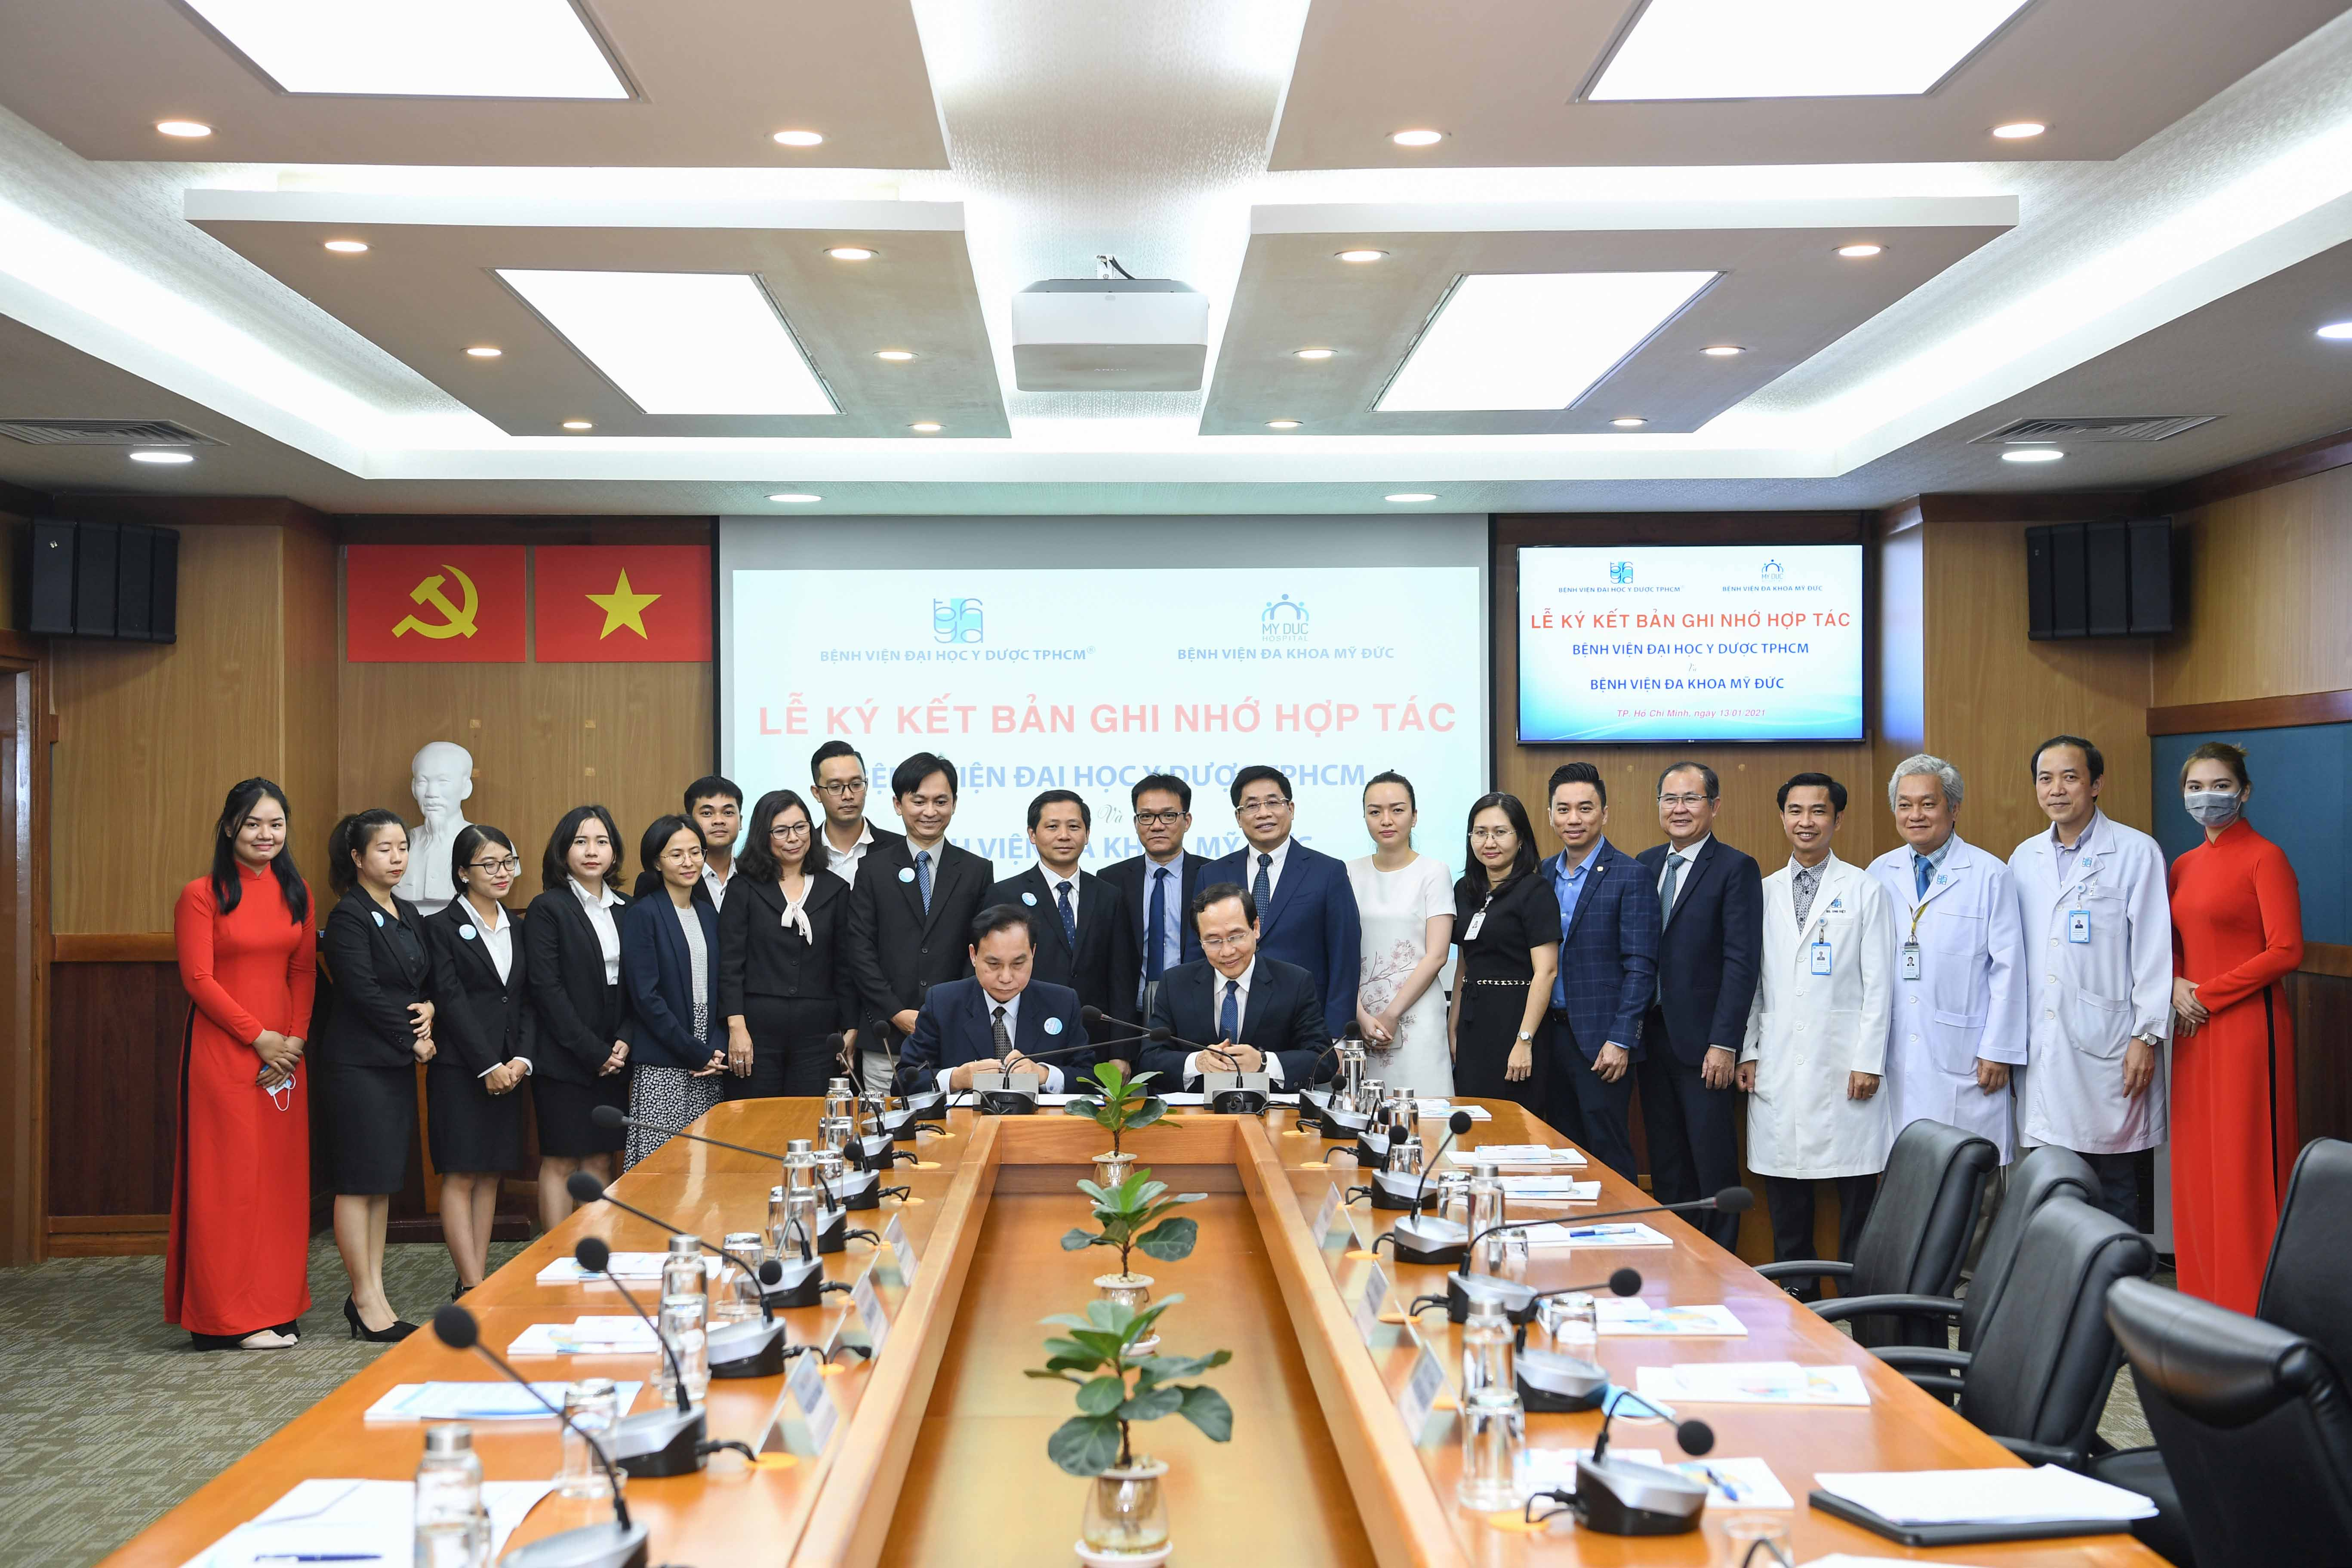 HOPE RESEARCH CENTER AND UNIVERSITY MEDICAL CENTER HO CHI MINH CITY SIGNED MOU FOR SCIENTIFIC RESEARCH COLLABORATION.